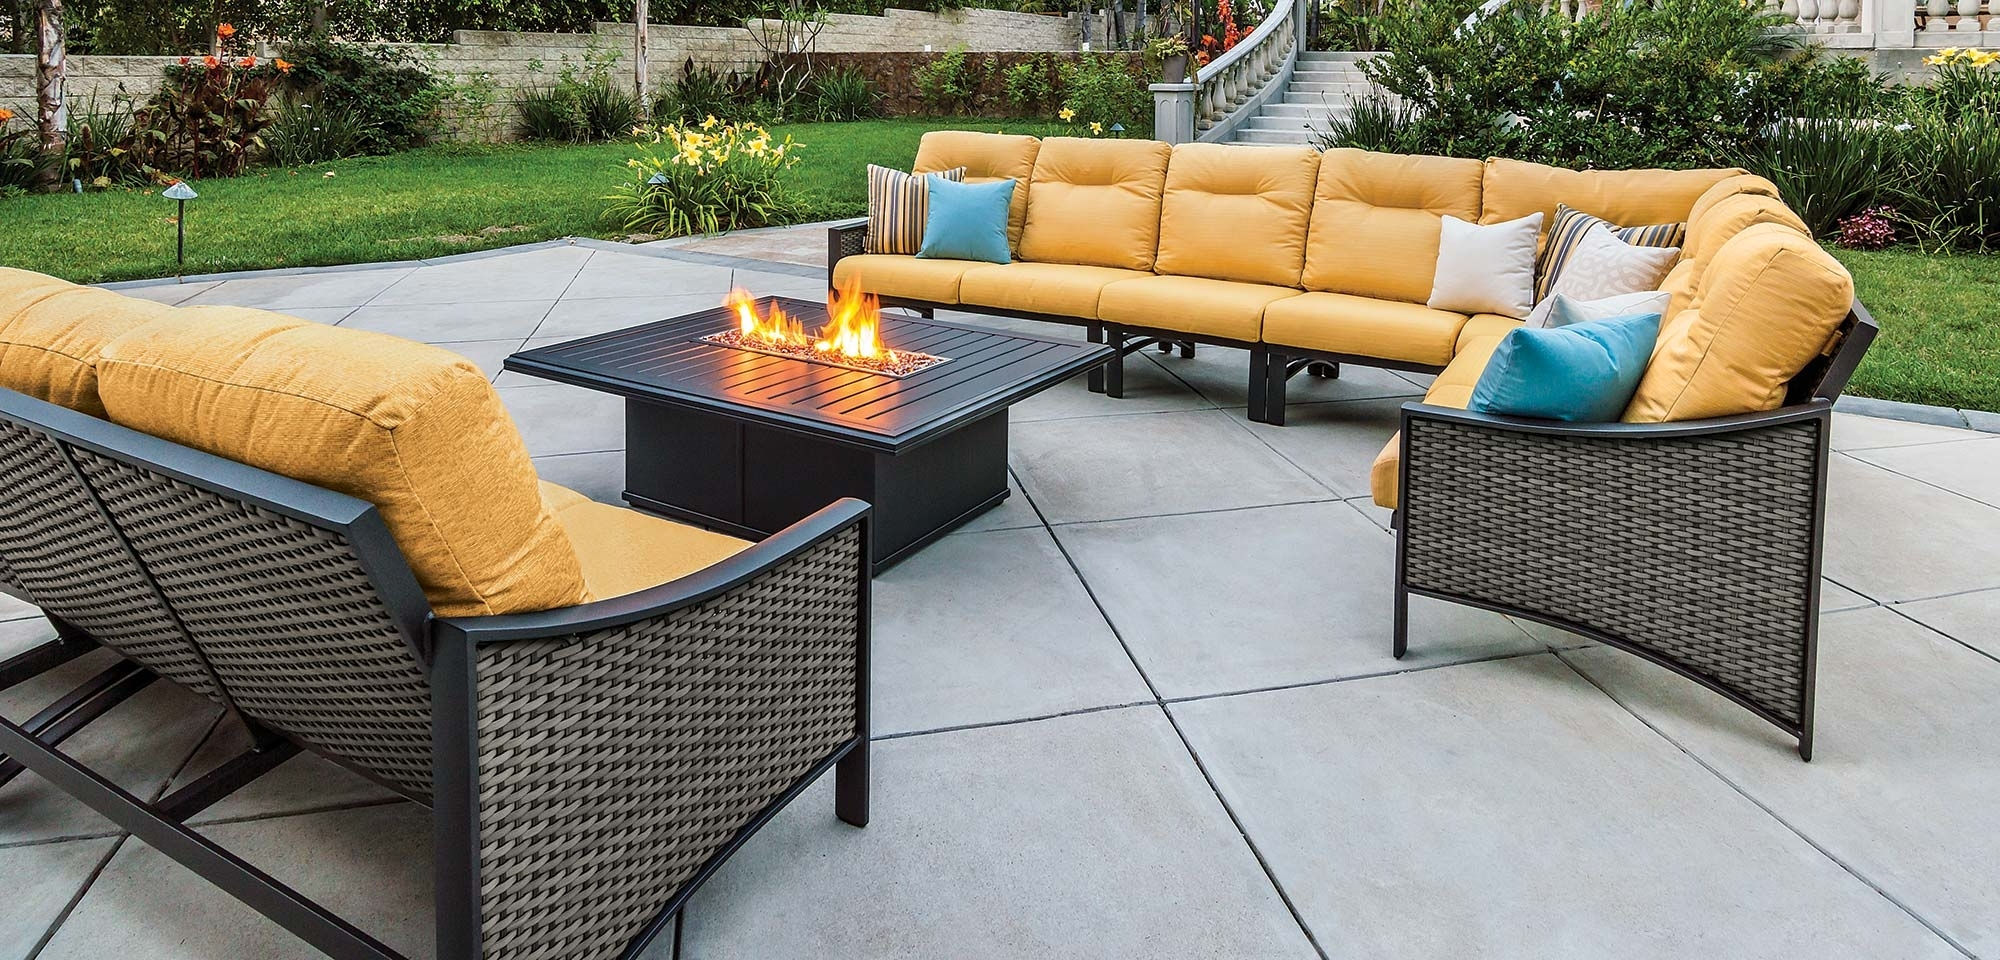 Famous Engaging Cheap Patio Sectional 13 Outdoor Sofa Furniture All Weather Throughout Inexpensive Patio Conversation Sets (View 4 of 15)